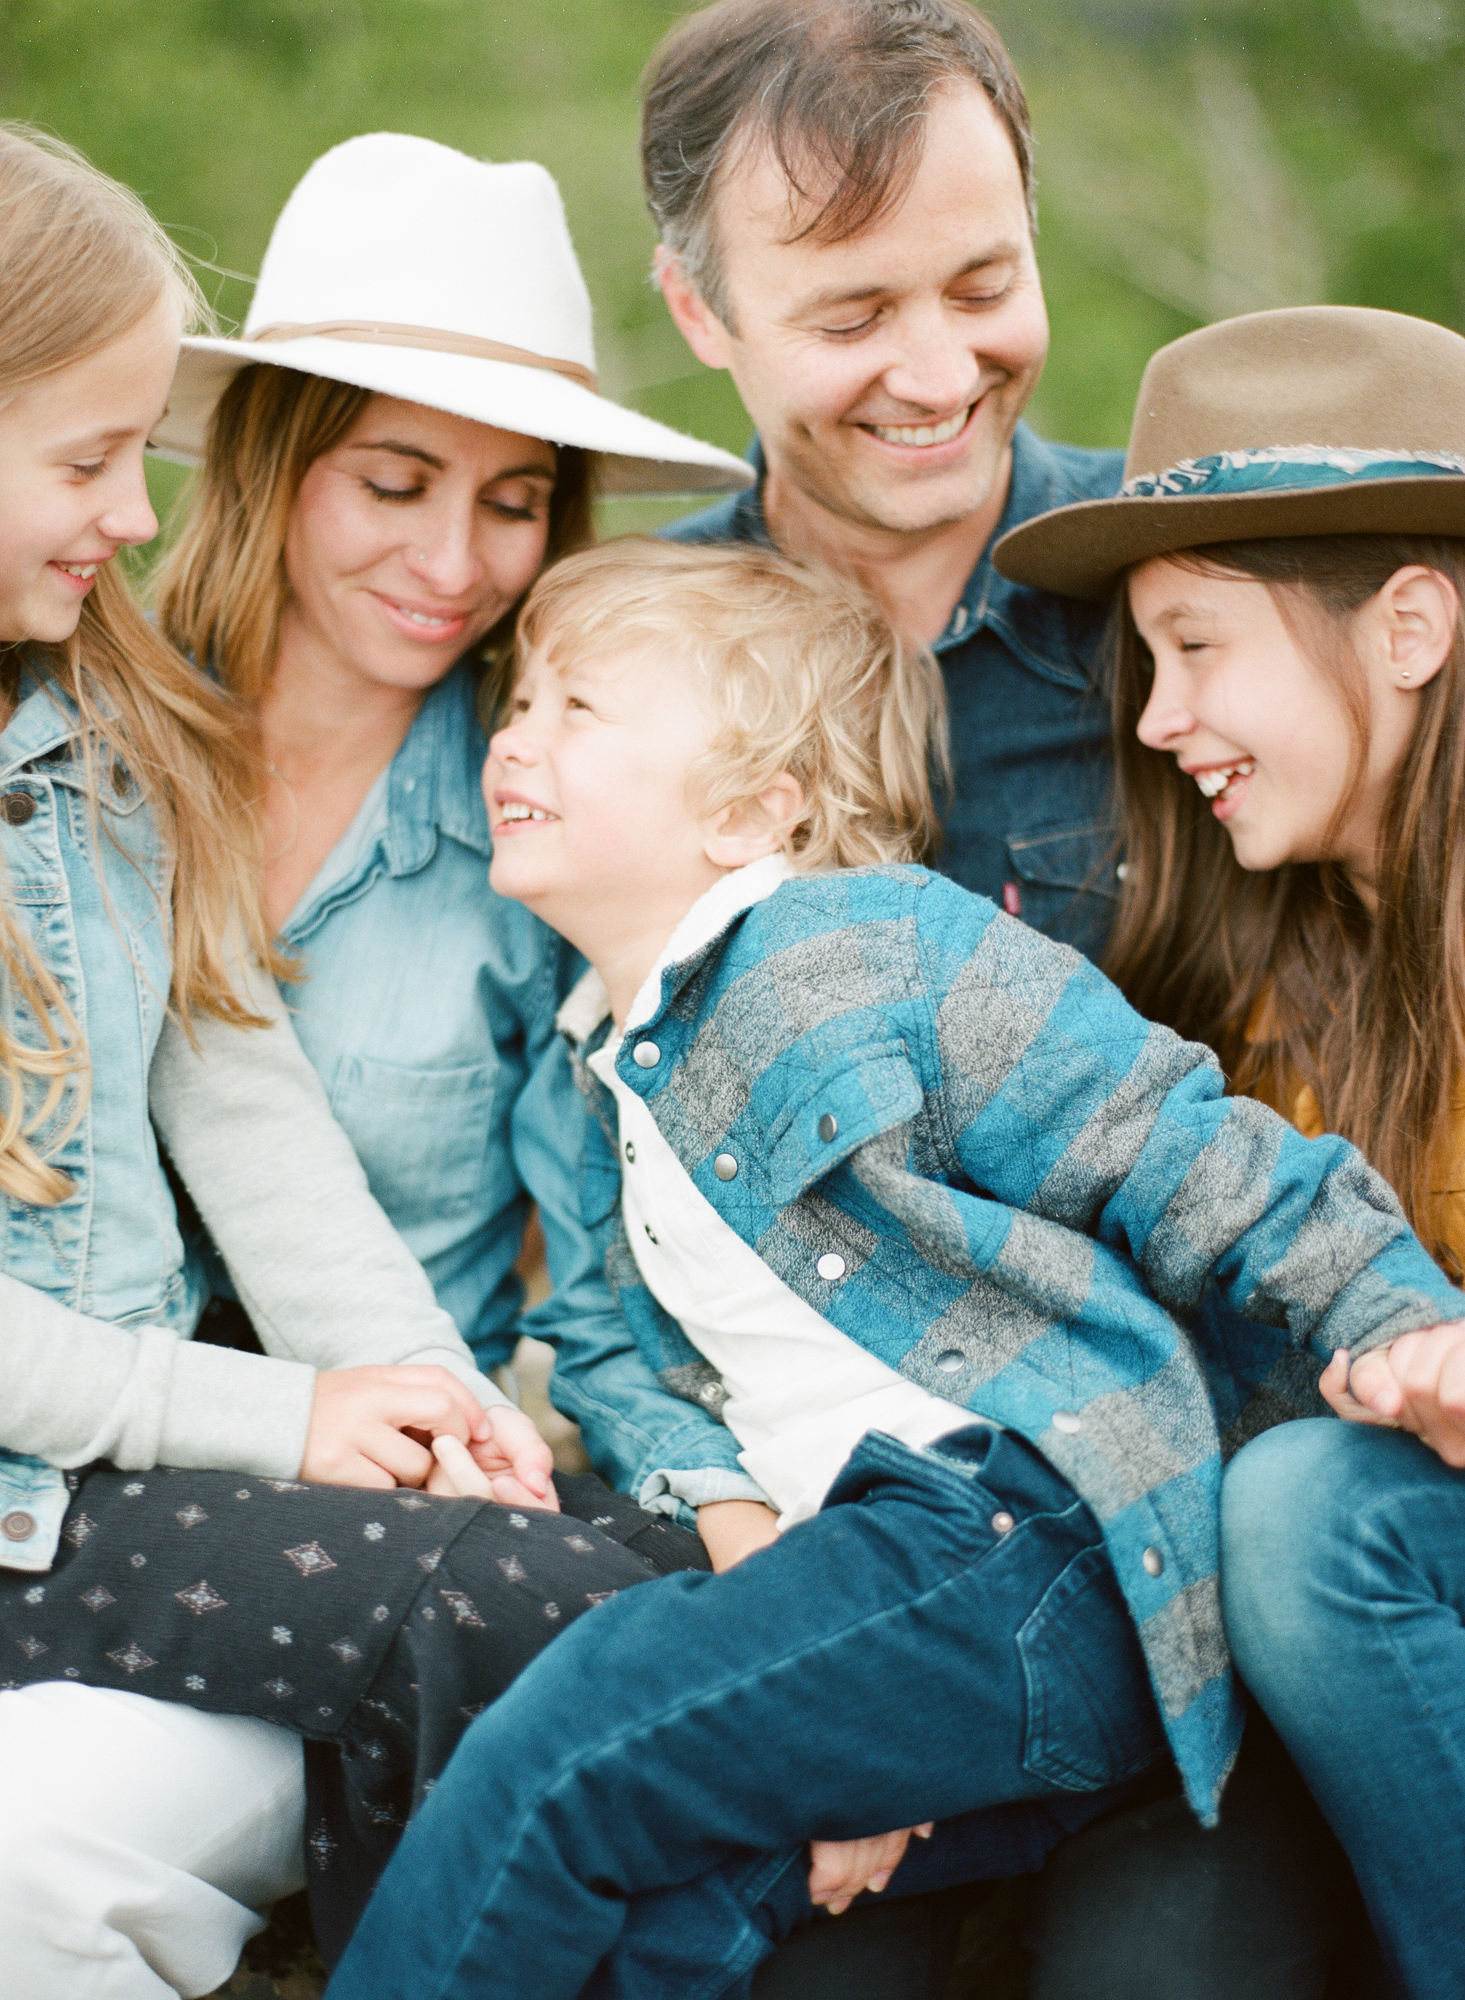 raleigh-lifestyle-family-photographer-lifestyle-photography-030